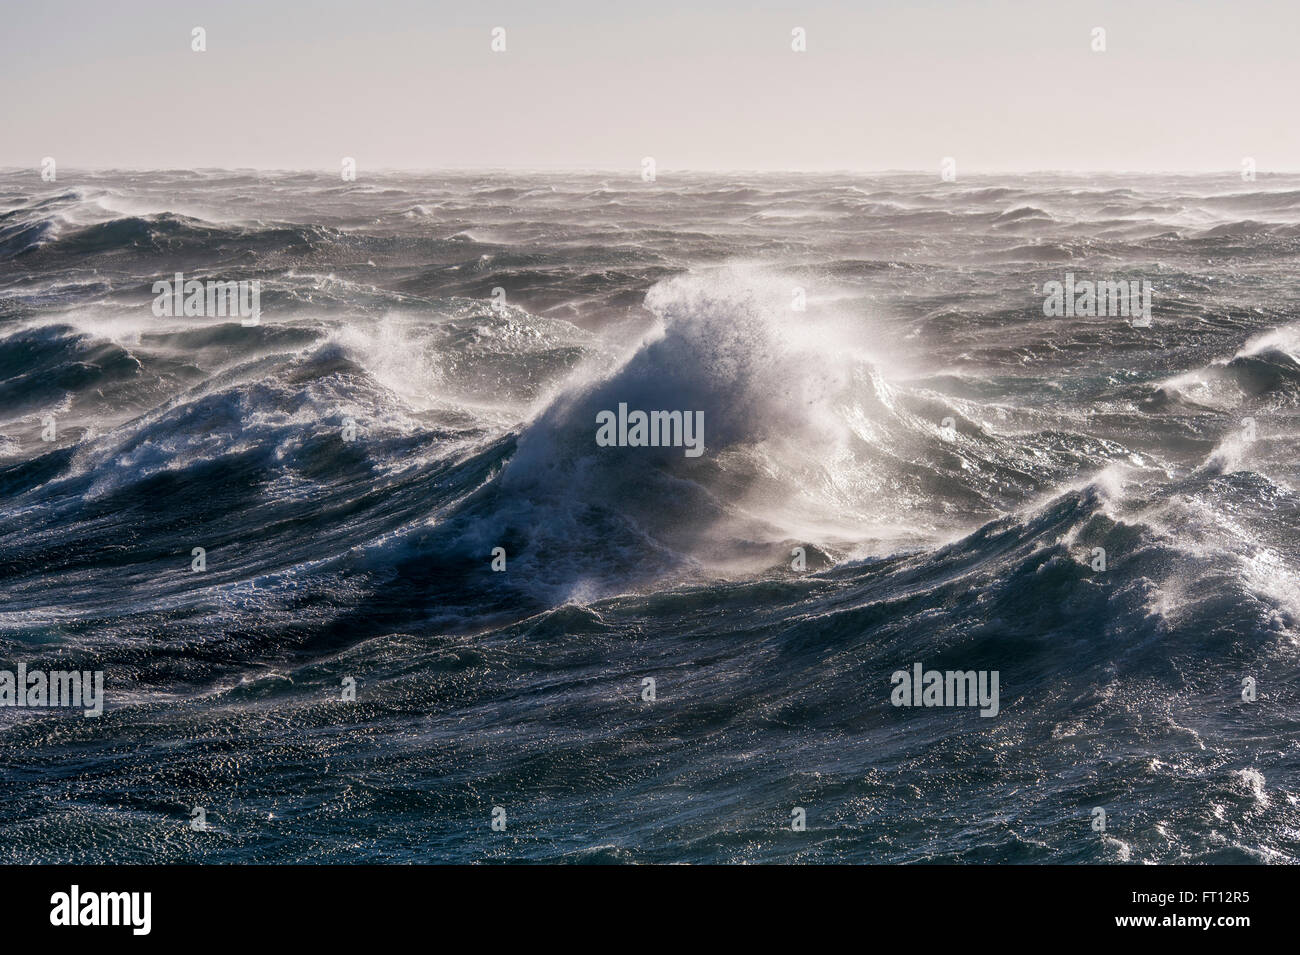 High waves in extremely rough seas in the Southern Ocean, Ross Sea, Antarctica Stock Photo